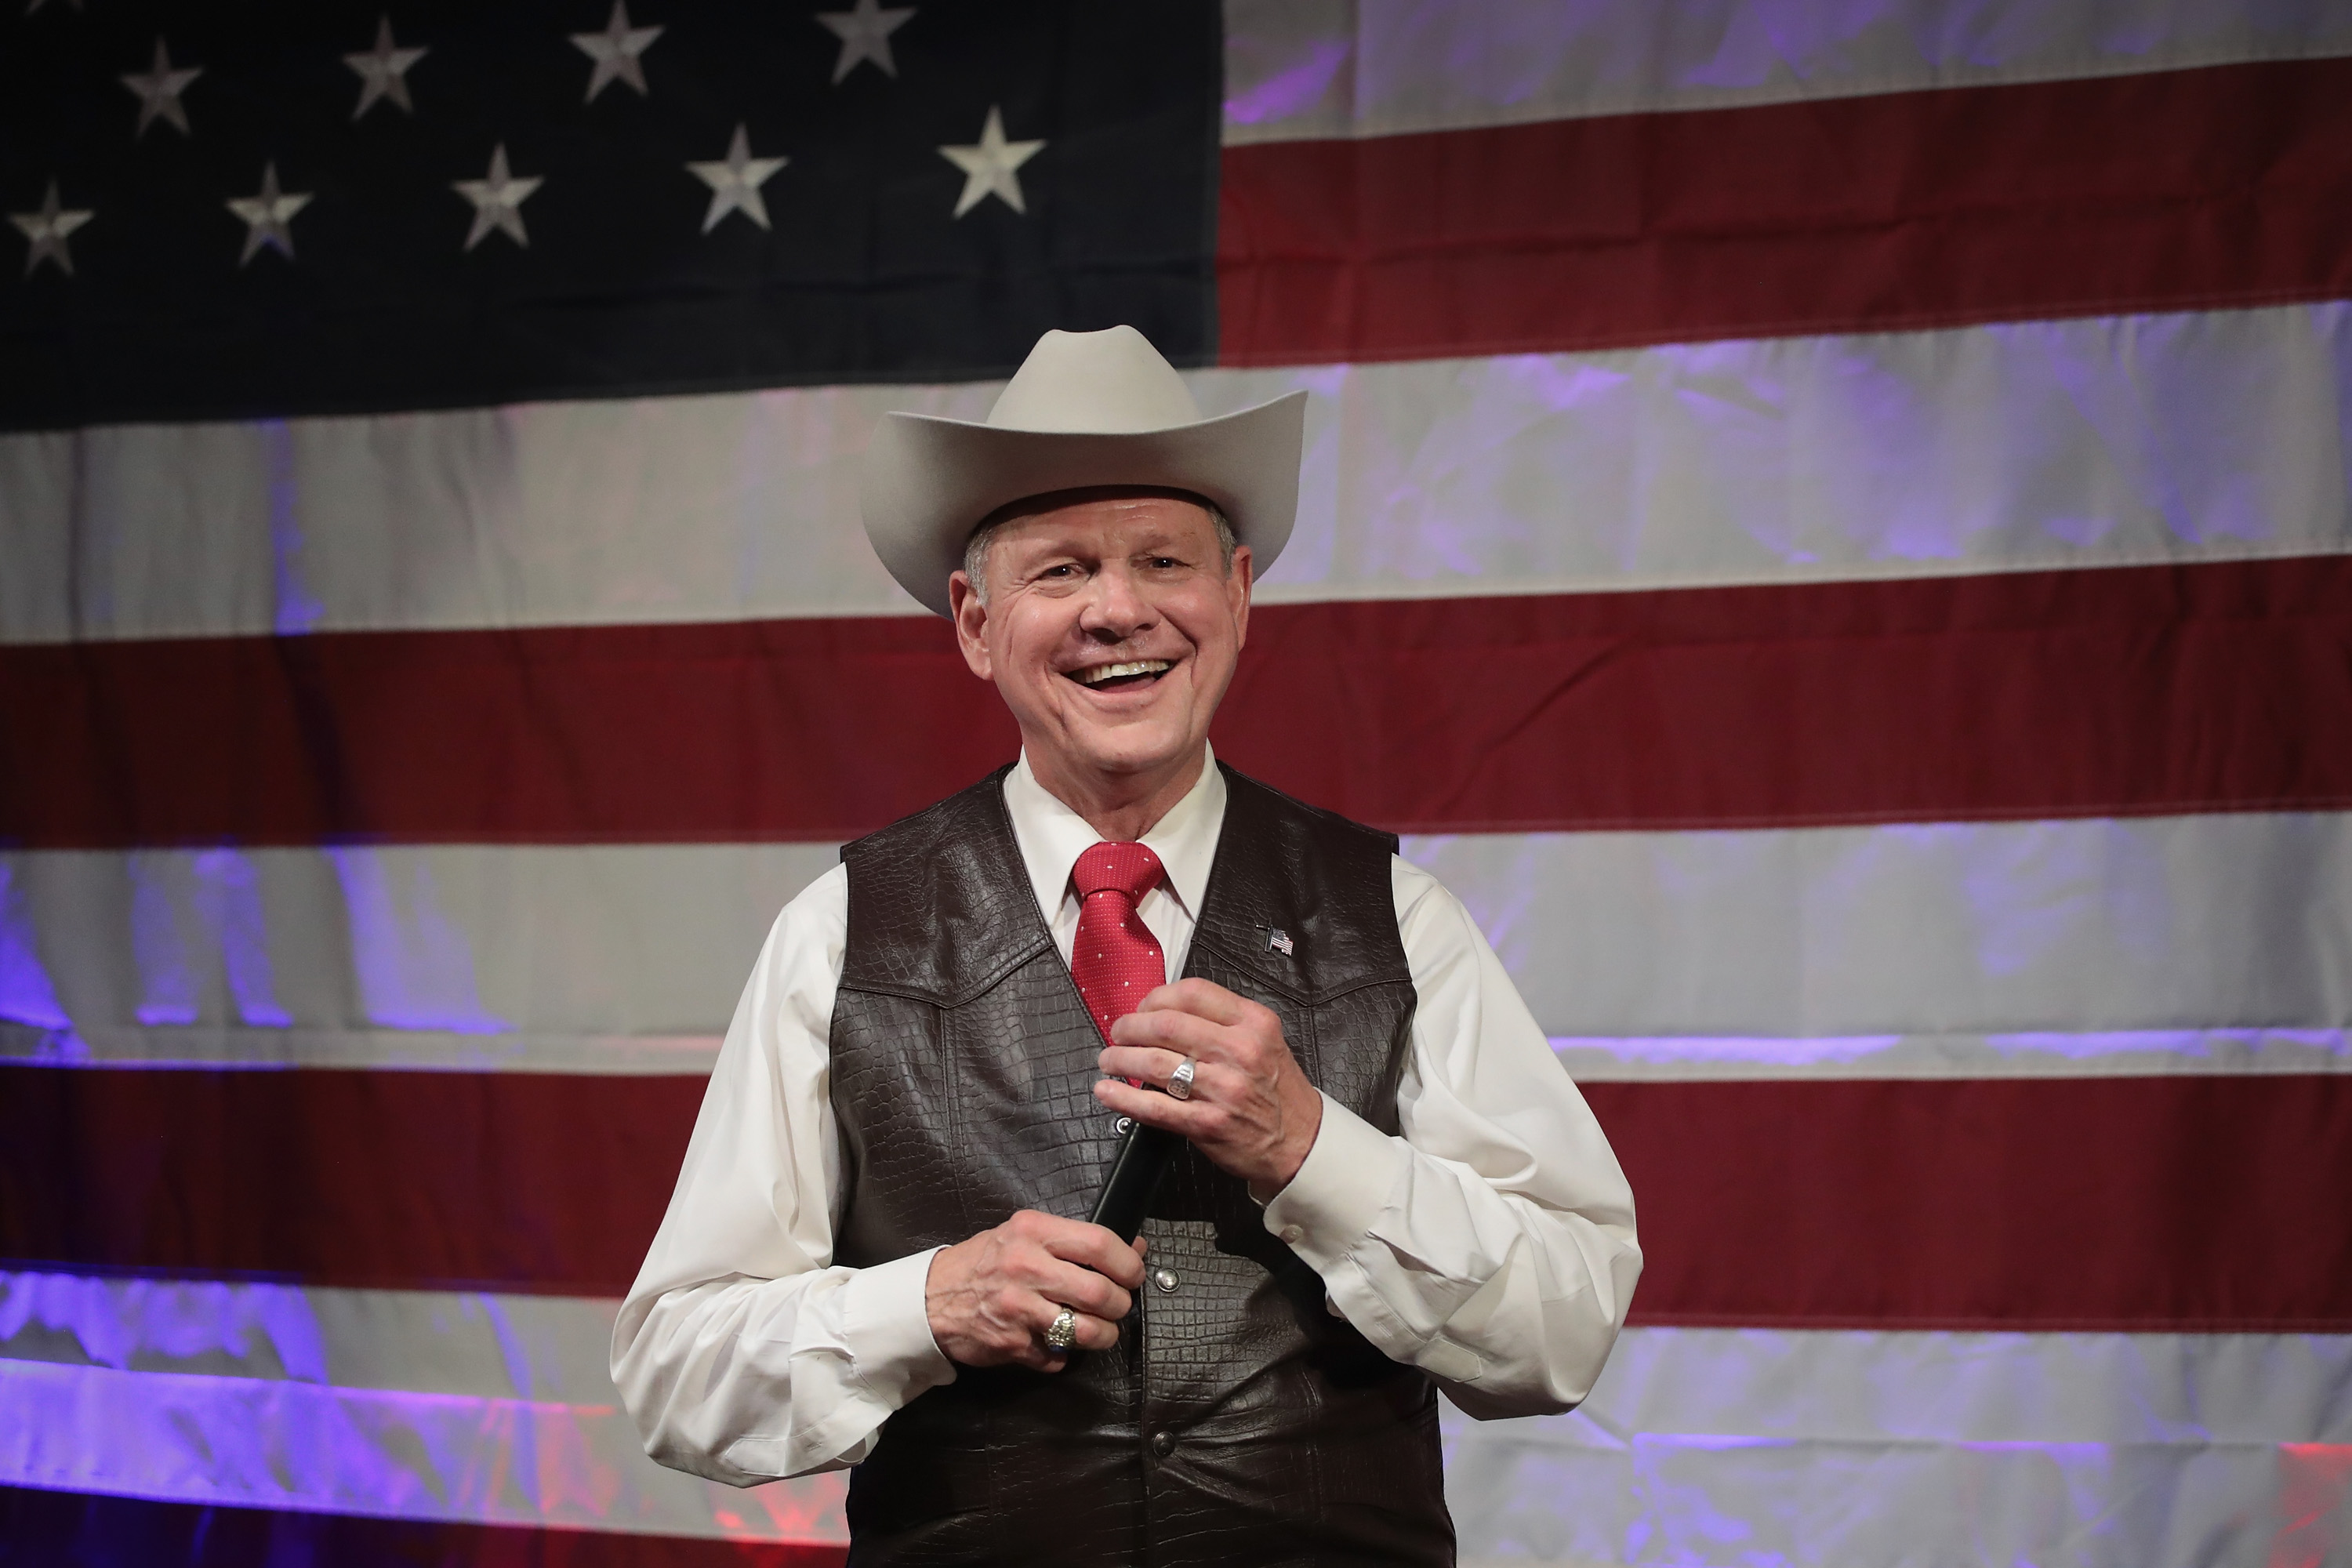 Roy Moore, speaks at a campaign rallyin Fairhope, Alabama on Sept. 25, 2017.